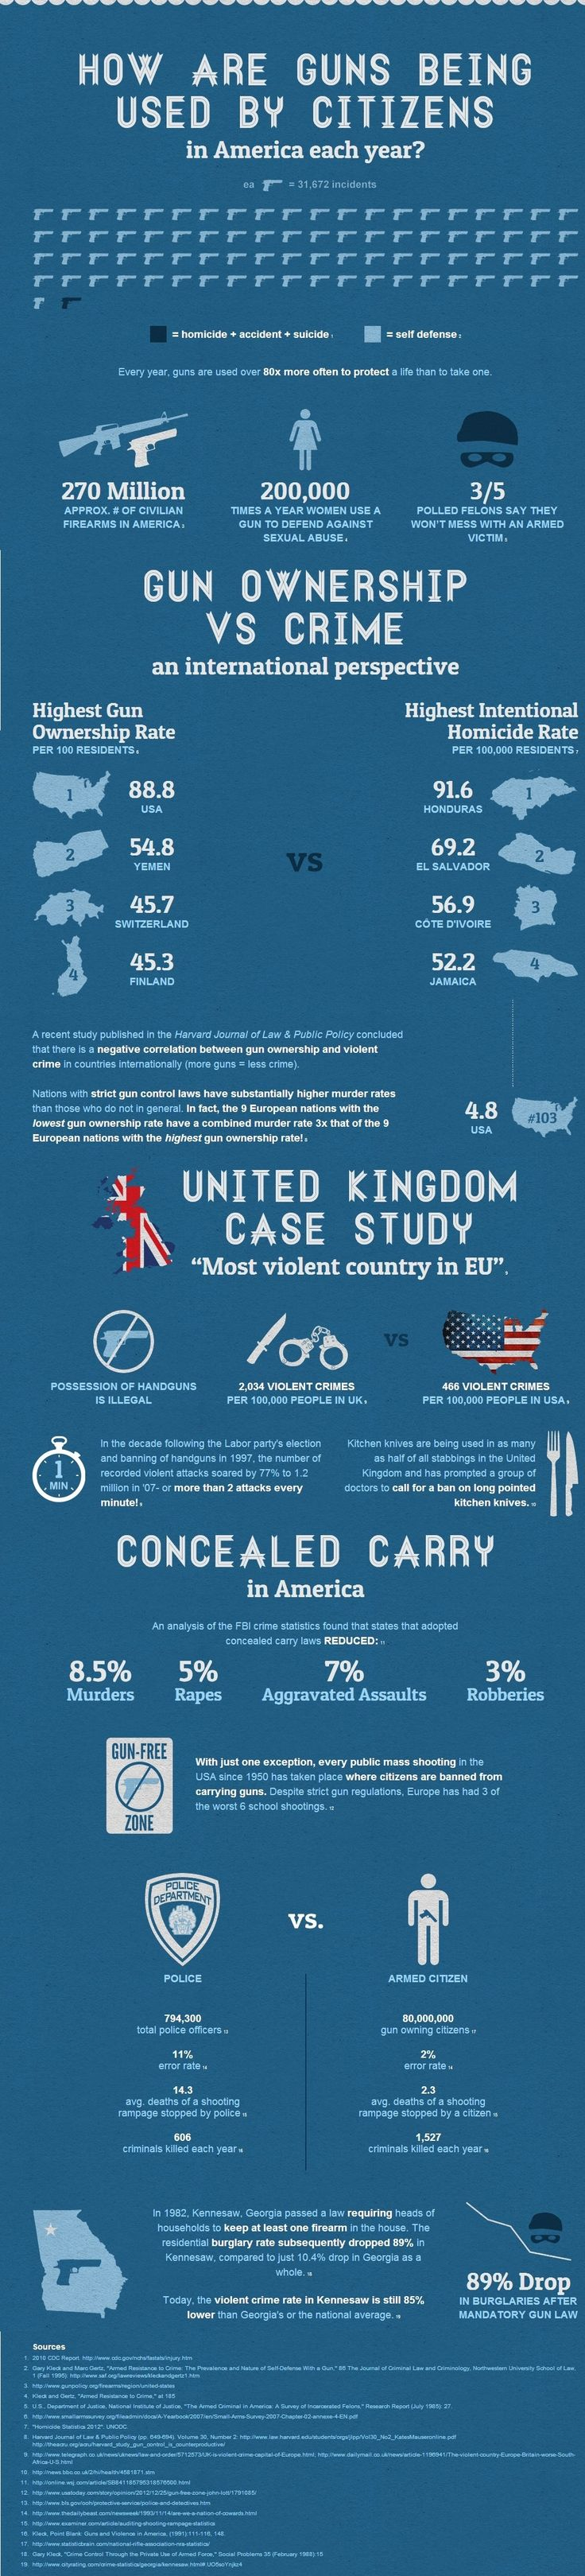 Interesting Infographic on How Guns are Being Used by American Citizens Each Year by THE ITS CREW on APRIL 29, 2013